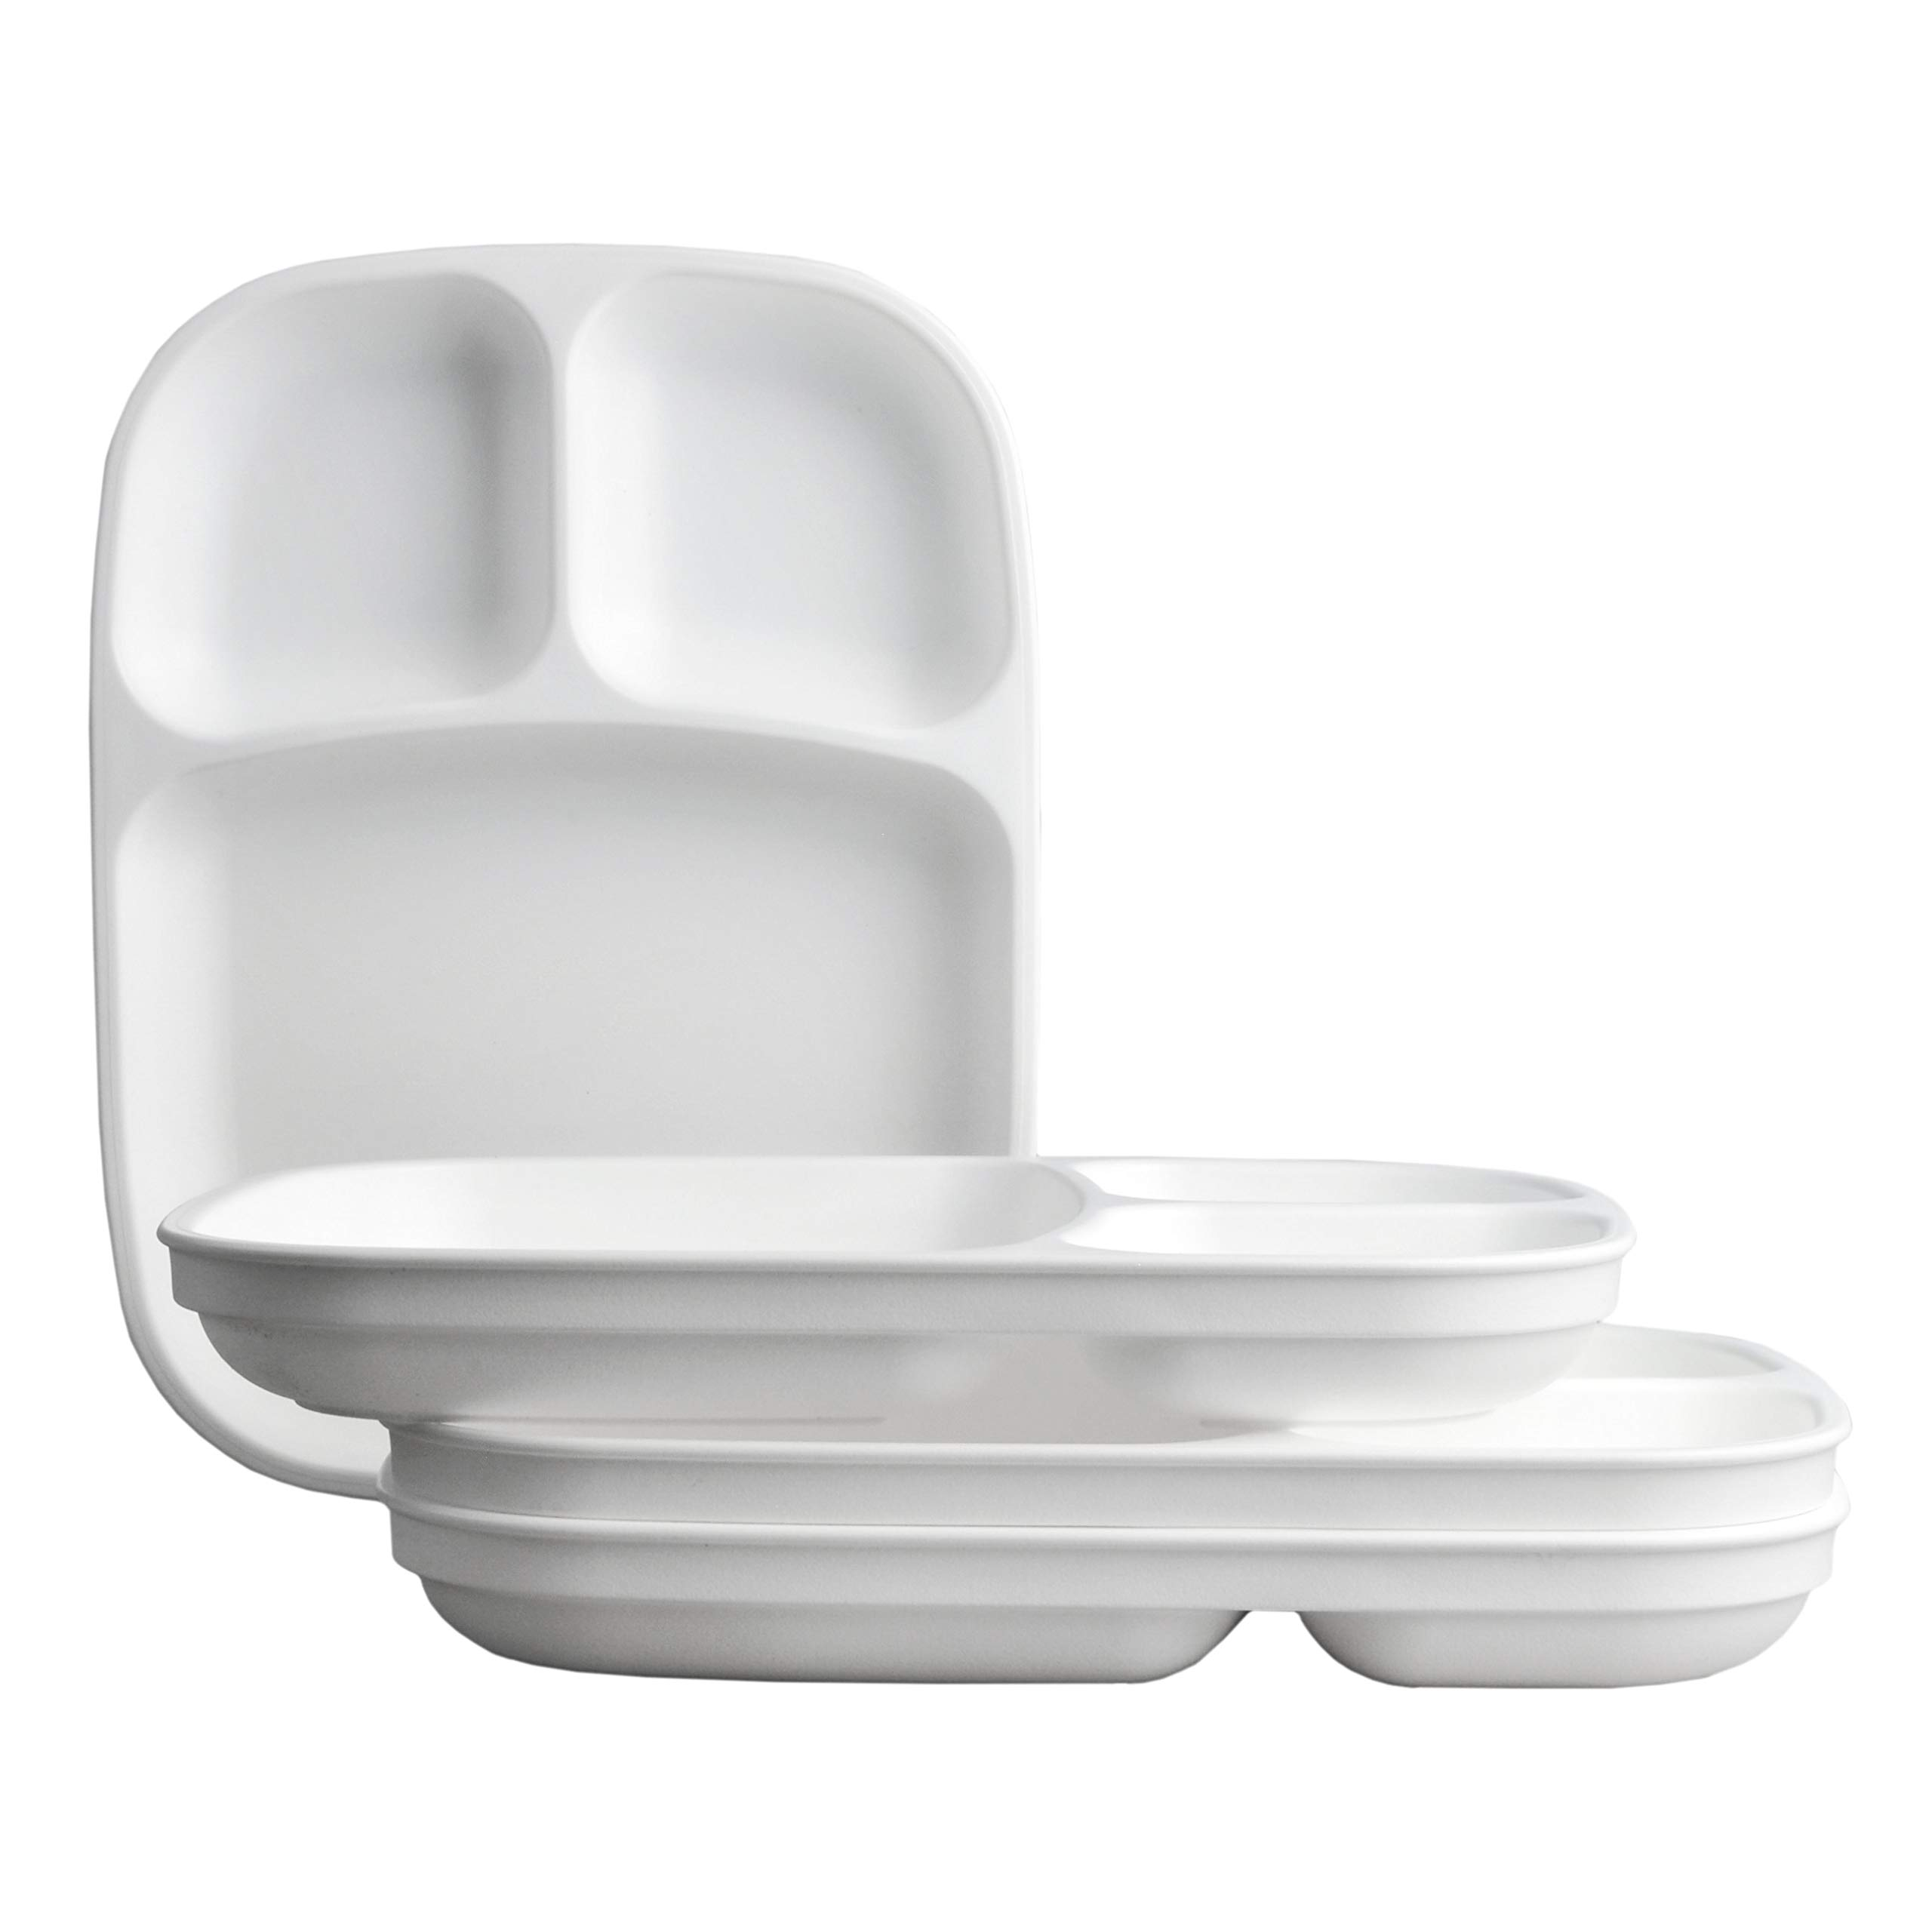 Re-Play Made in USA 4pk White Large Sandwich Divided Plates with Deep Sides and Three Compartments Great for Outdoor, Camping, Party, Tailgating or Everyday Dining by Re-Play